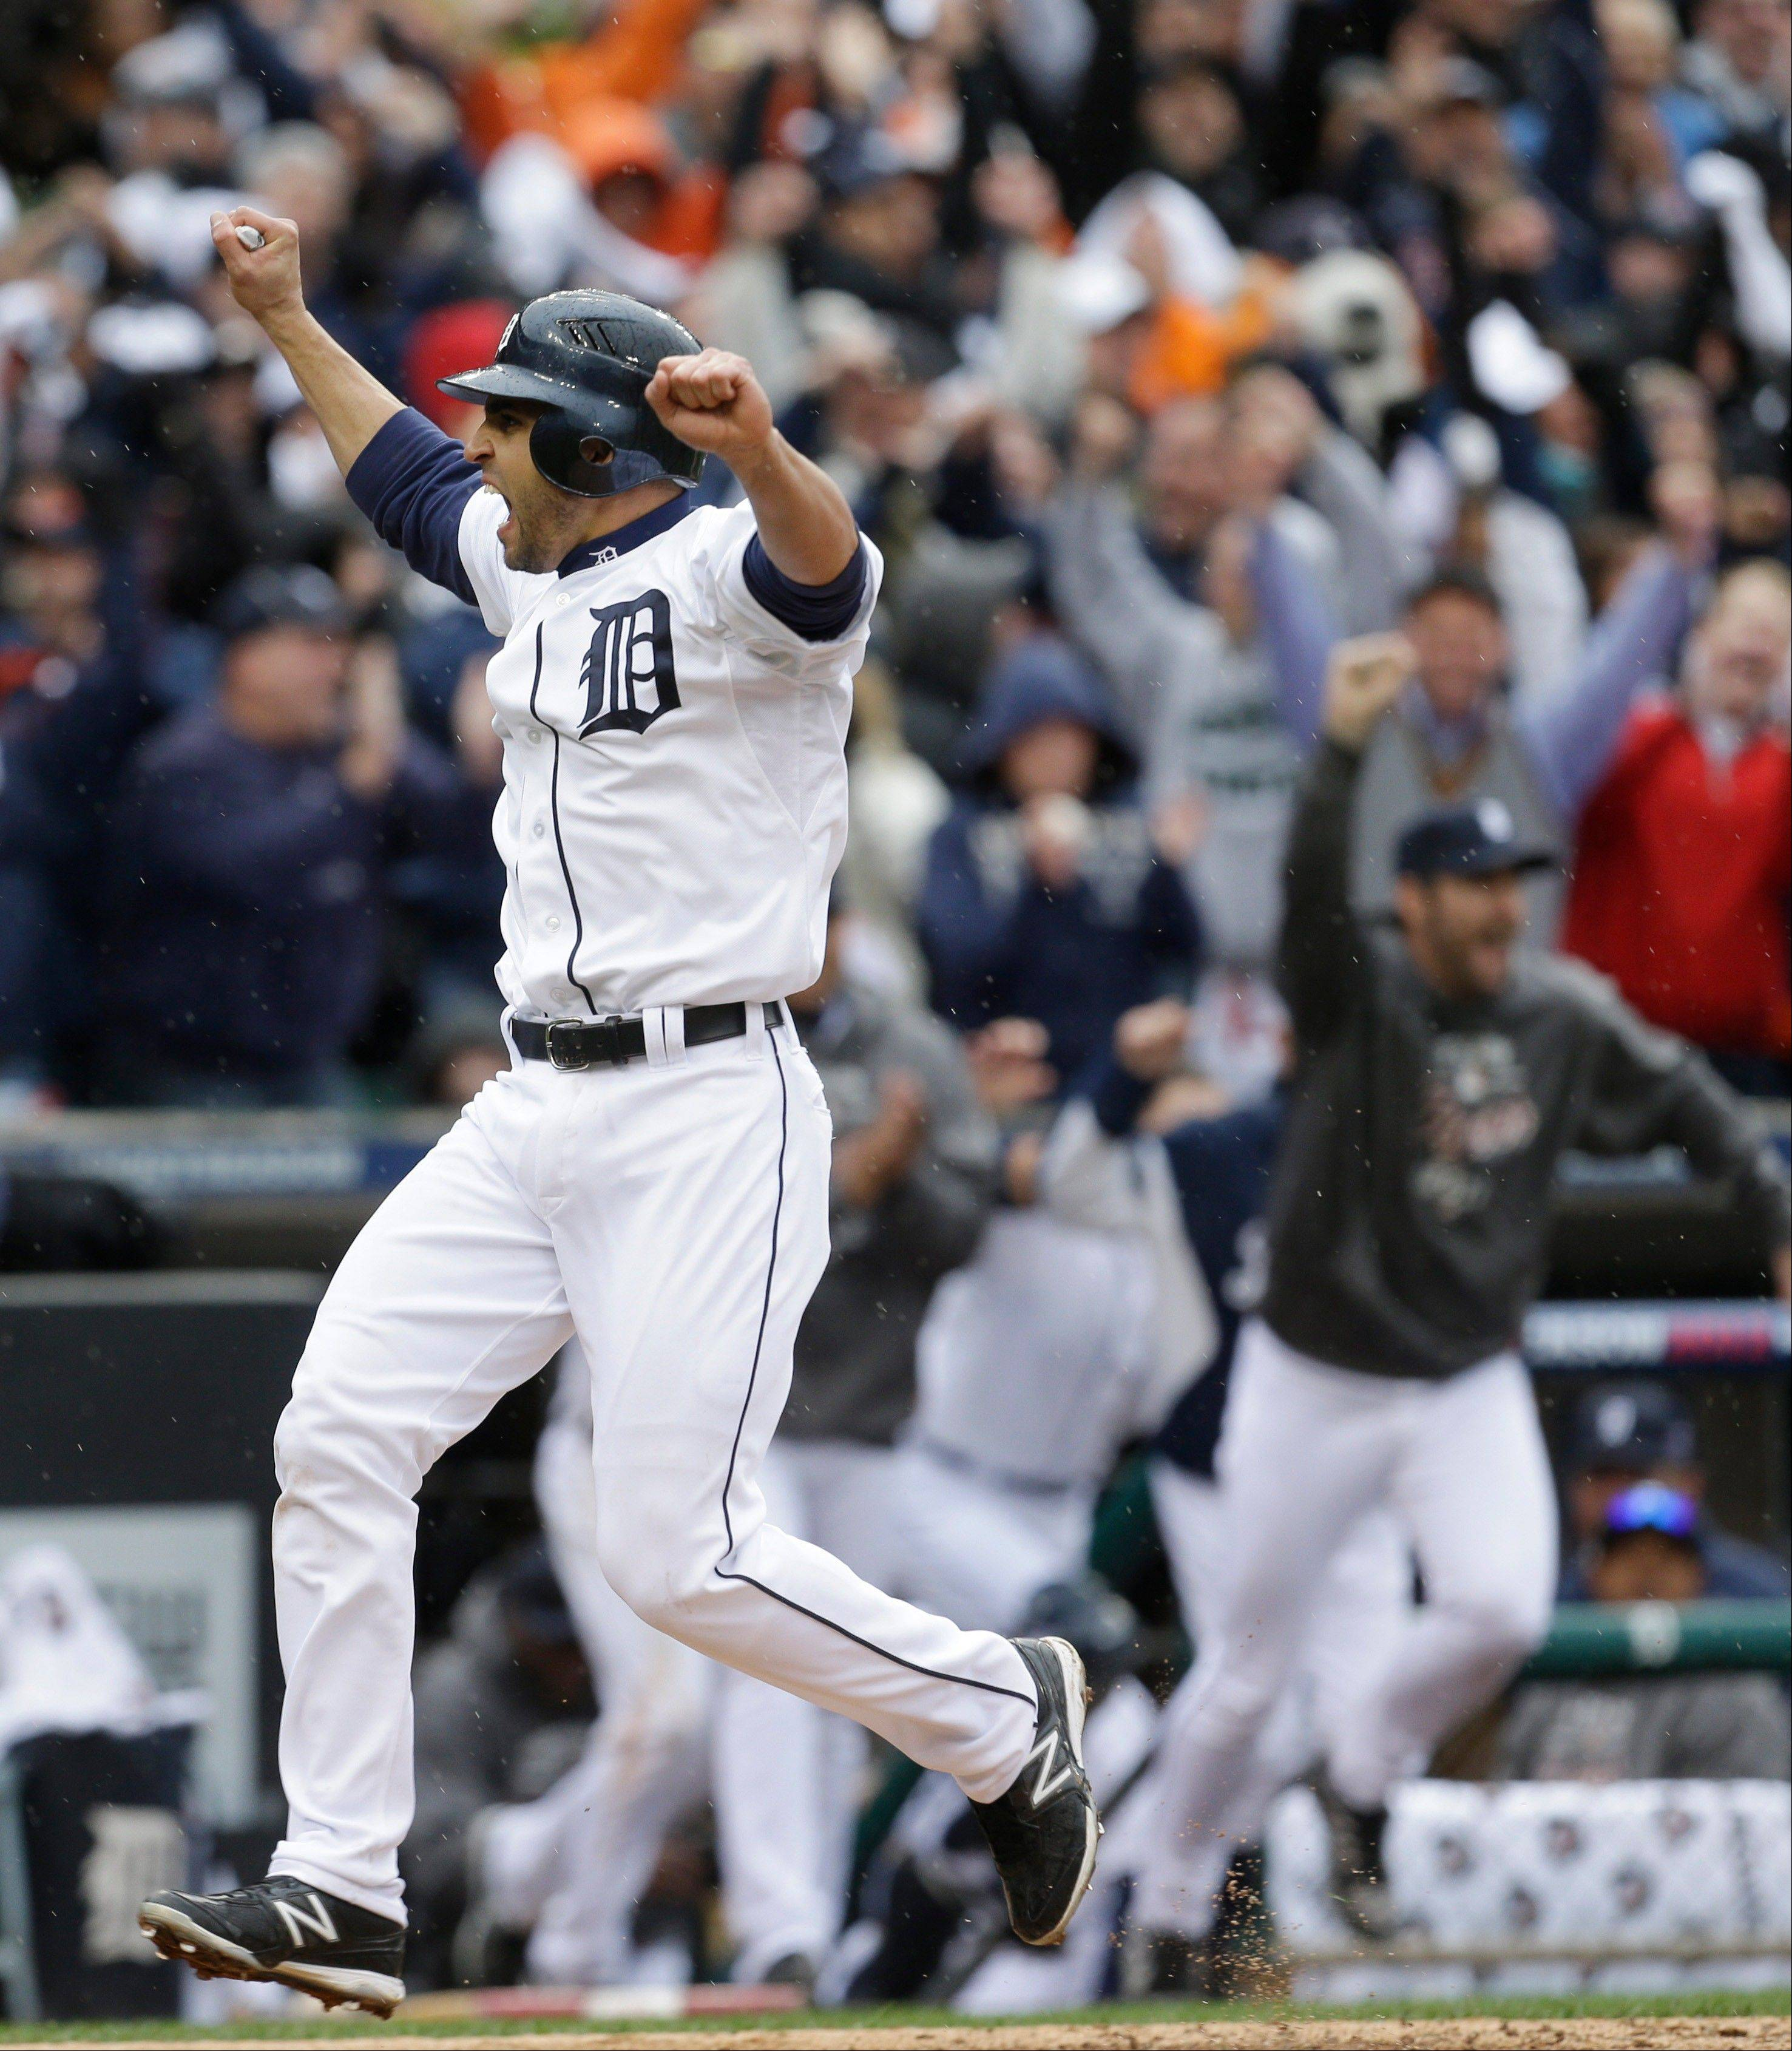 Detroit's Omar Infante scores the winning run in the ninth inning Sunday on a sacrifice fly by teammate Don Kelly in Game 2 of their American League Division Series against Oakland in Detroit.